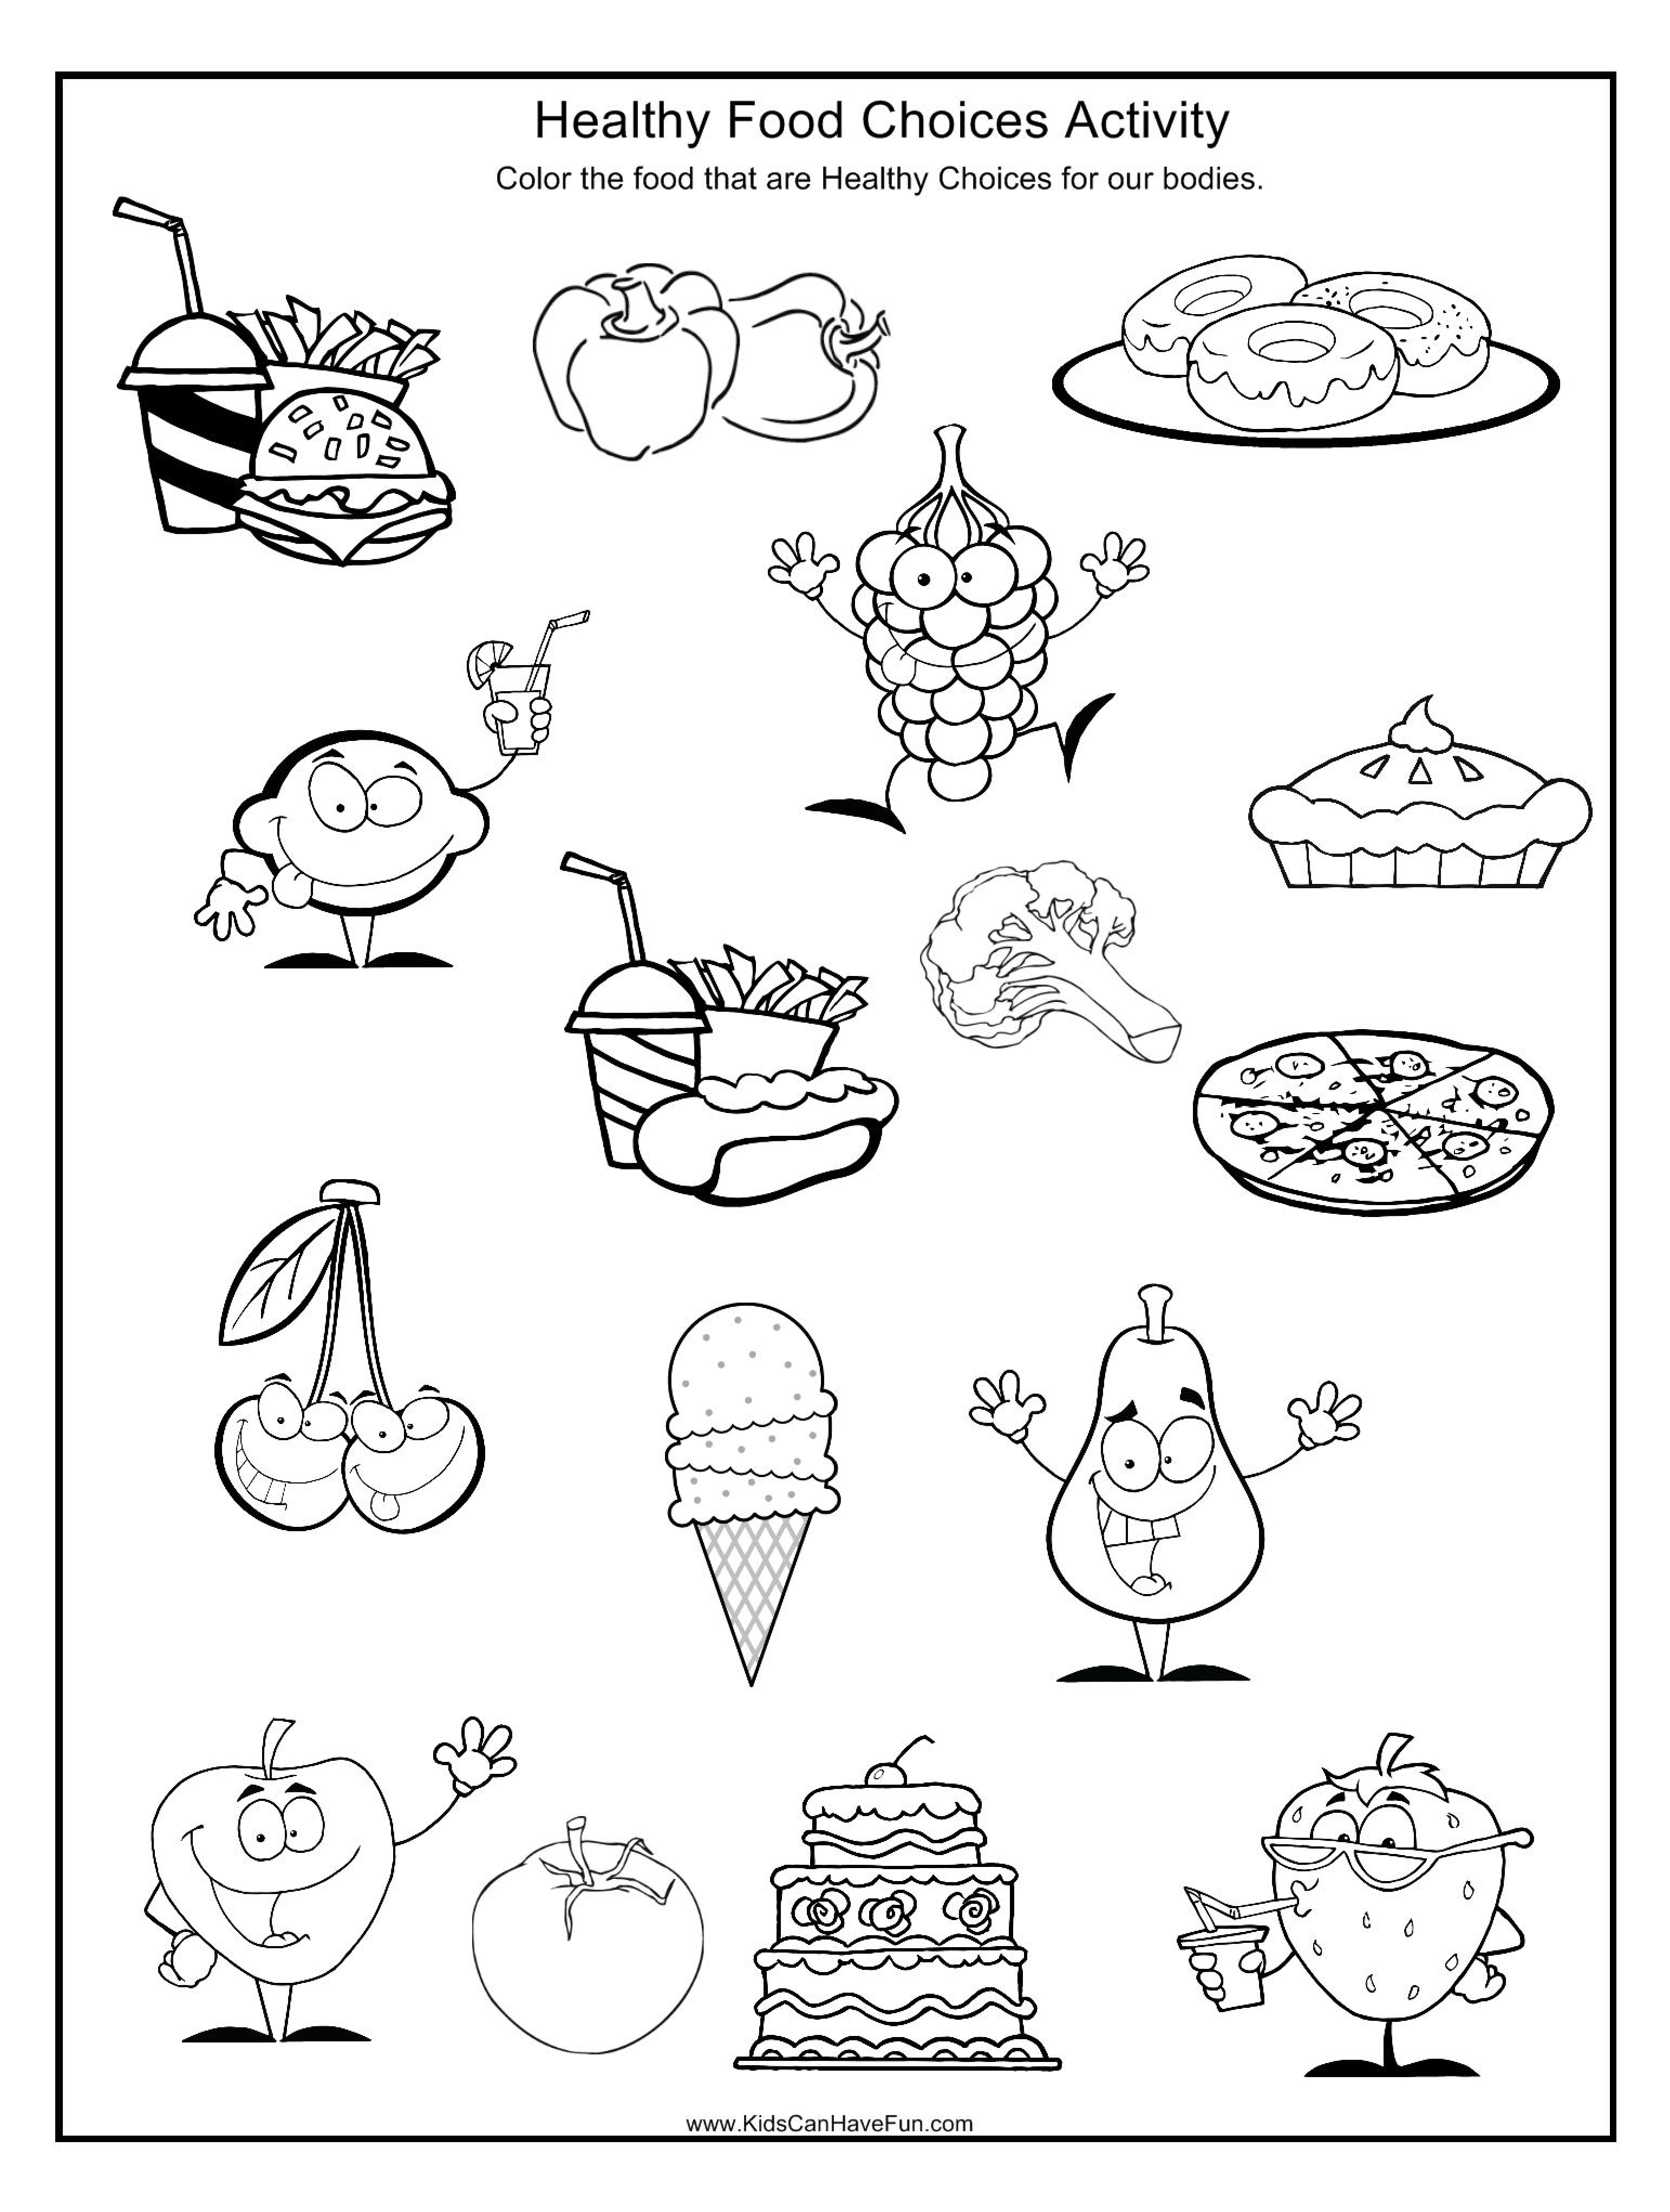 Healthy And Unhealthy Food Image By Emily Patterson On